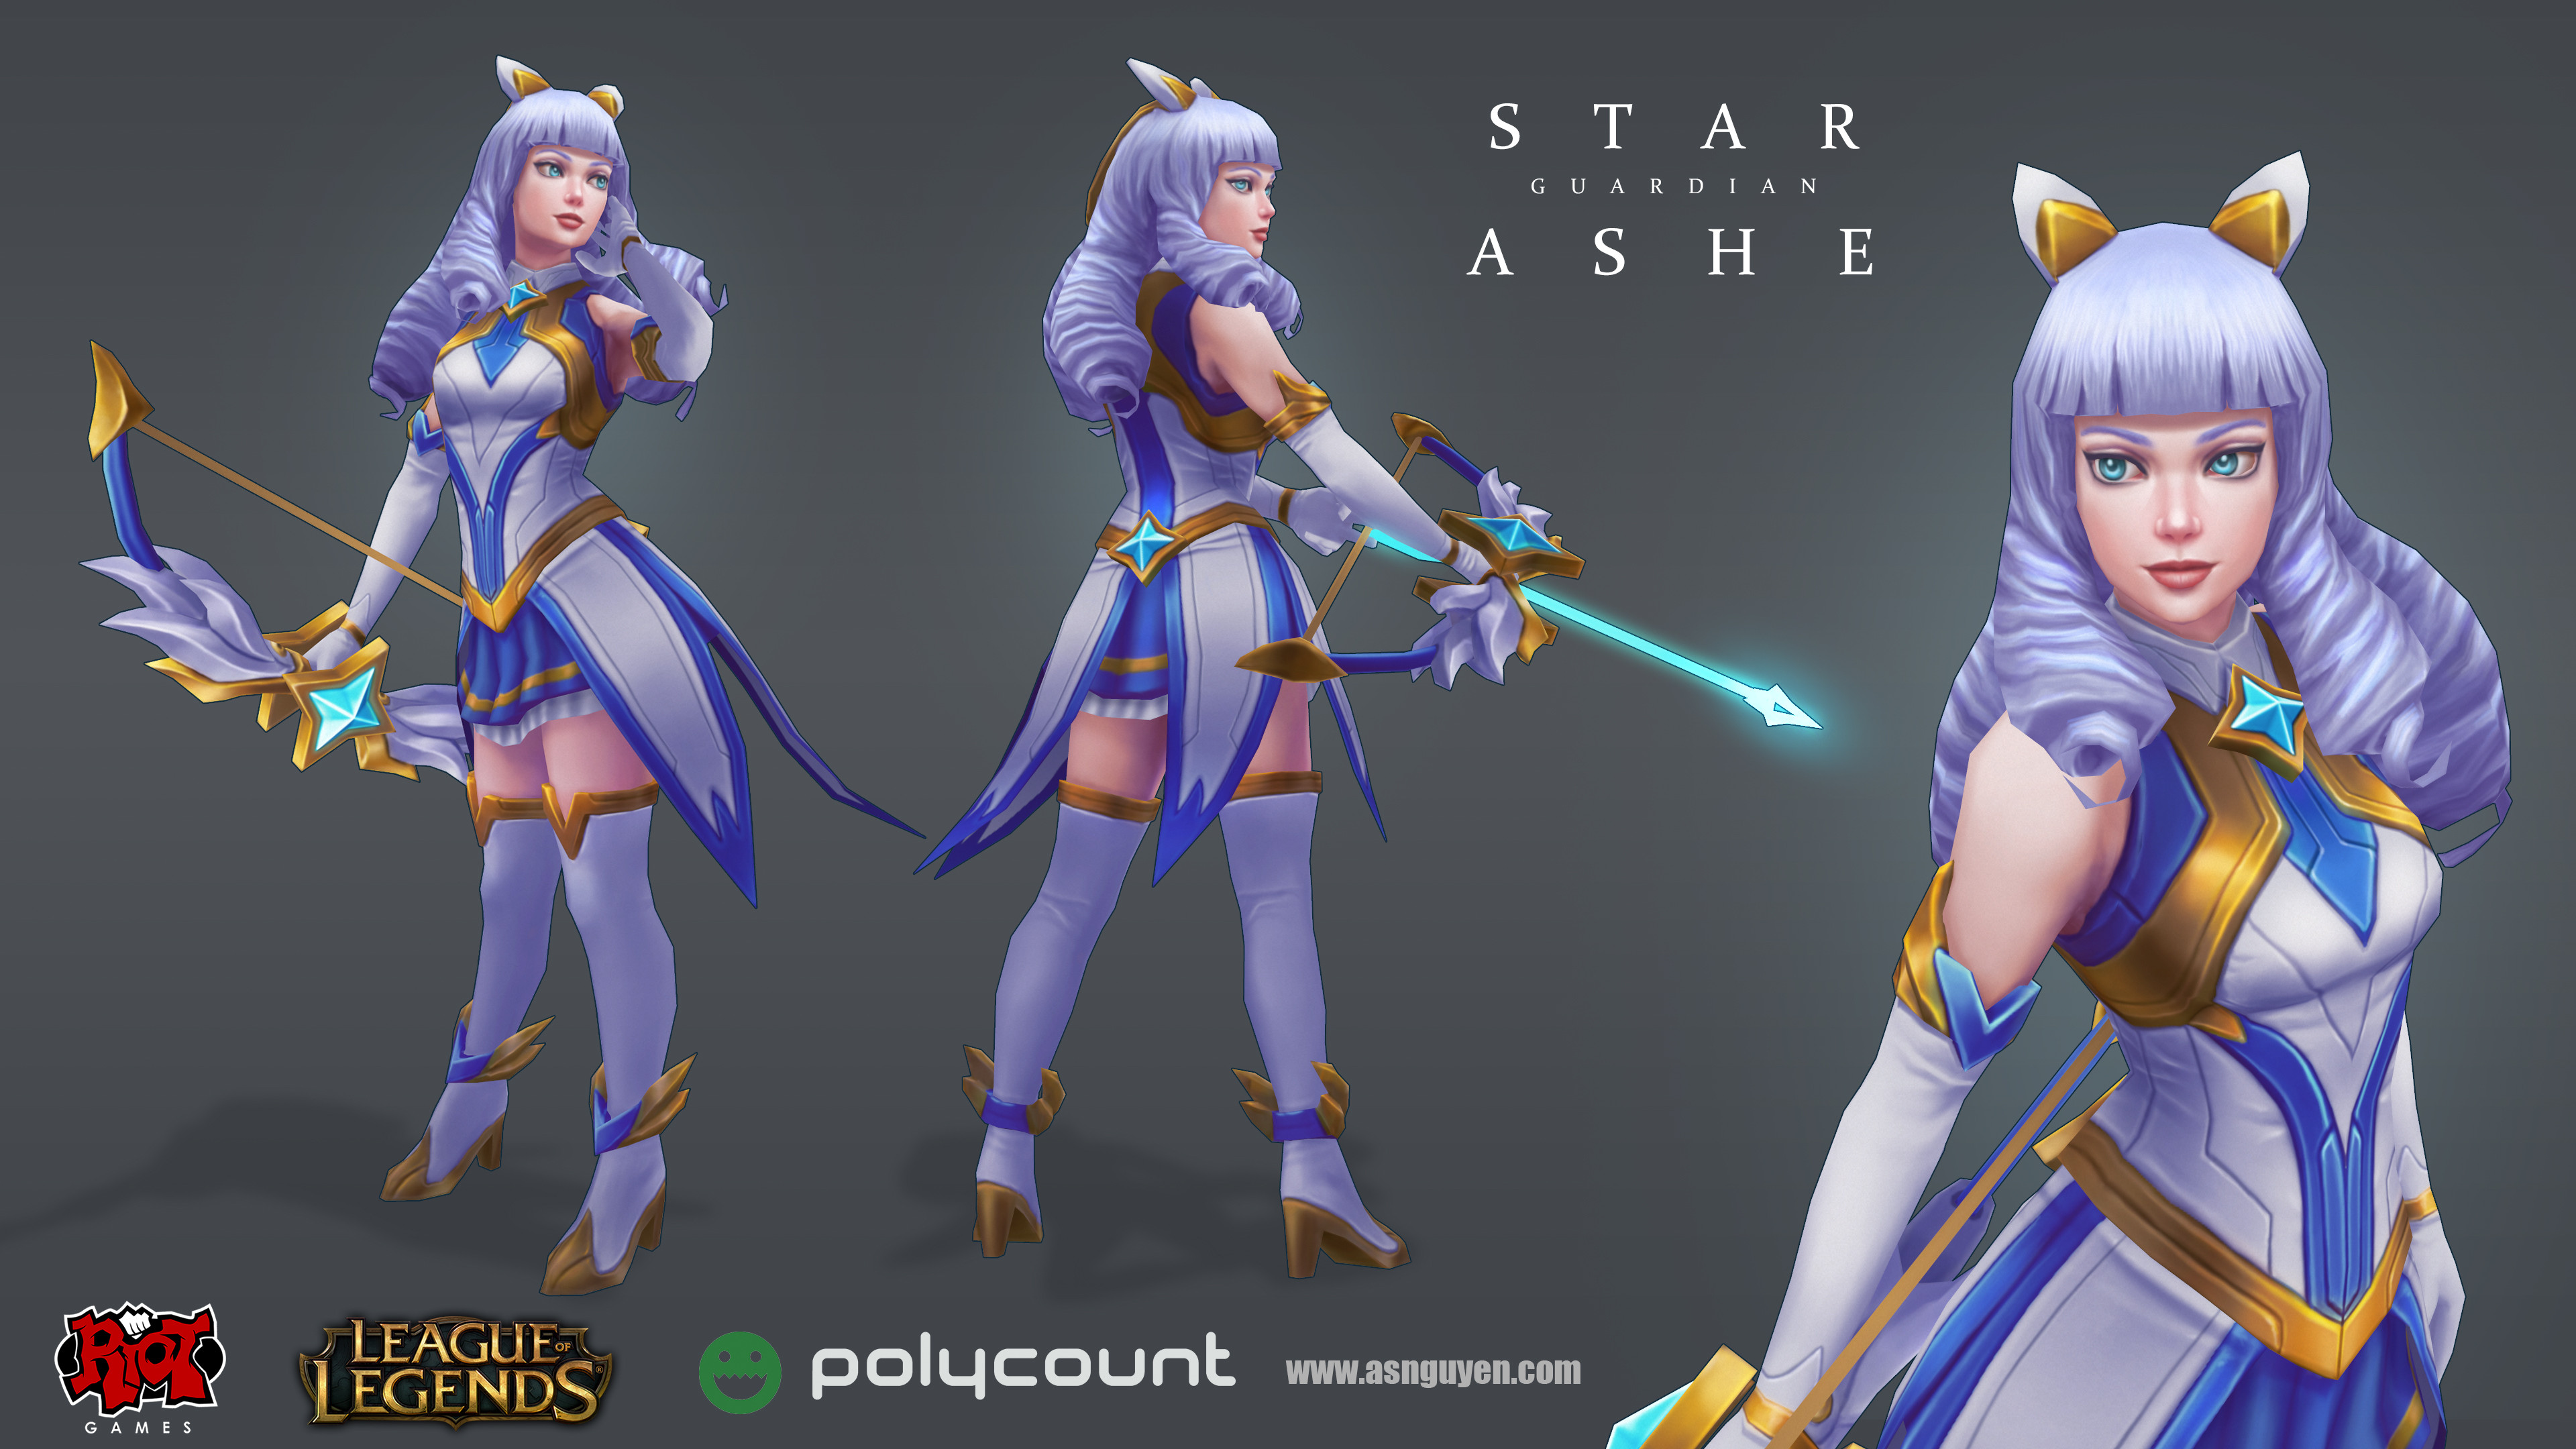 ArtStation - Star Guardian Ashe - Polycount/Riot Creative Contest 2017,  Alex Nguyen